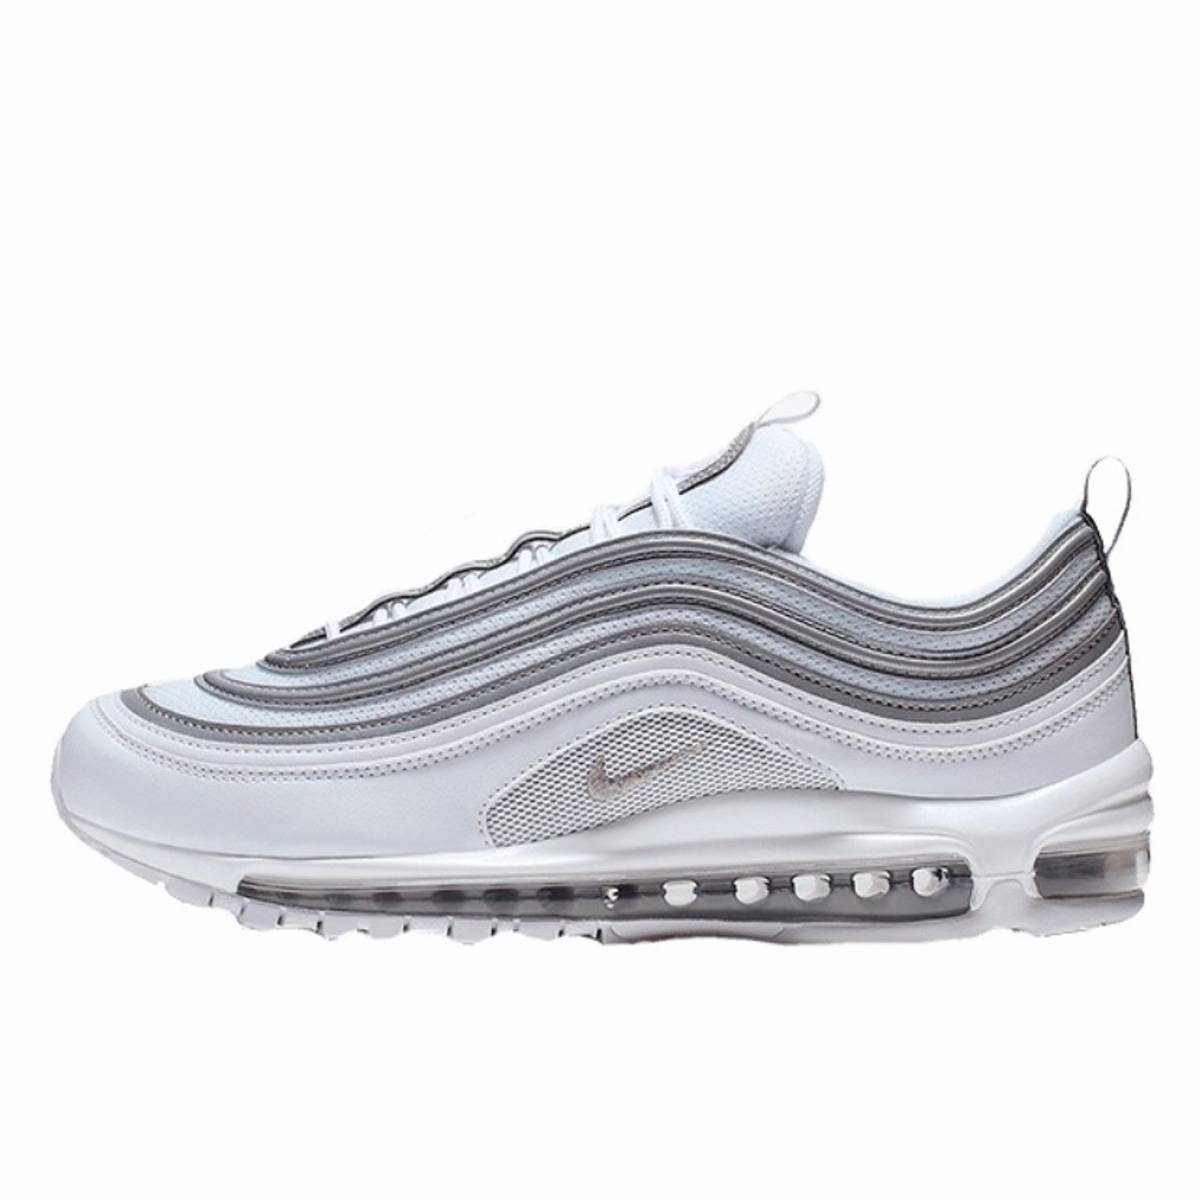 Nike 2019 Nike Air Max 97 White Reflective Silver Wolf Grey